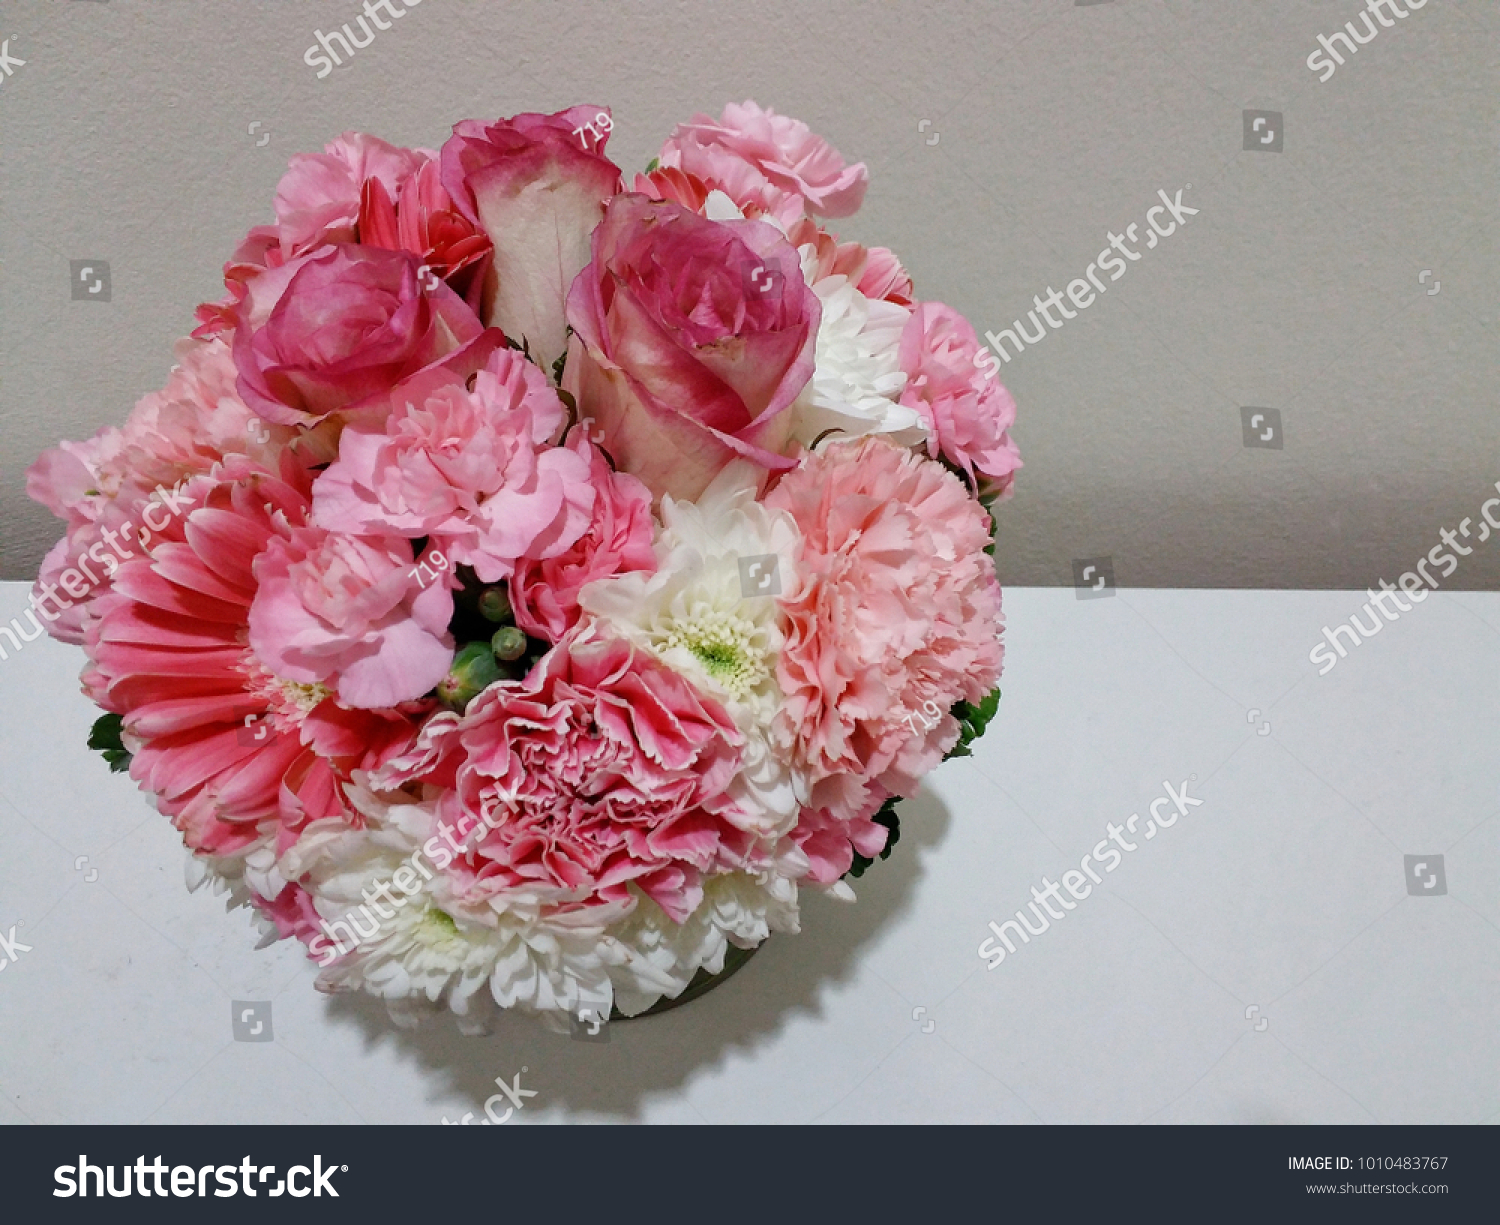 Pink Flower Bouquet Rose Daisy Gerbera Stock Photo (Royalty Free ...